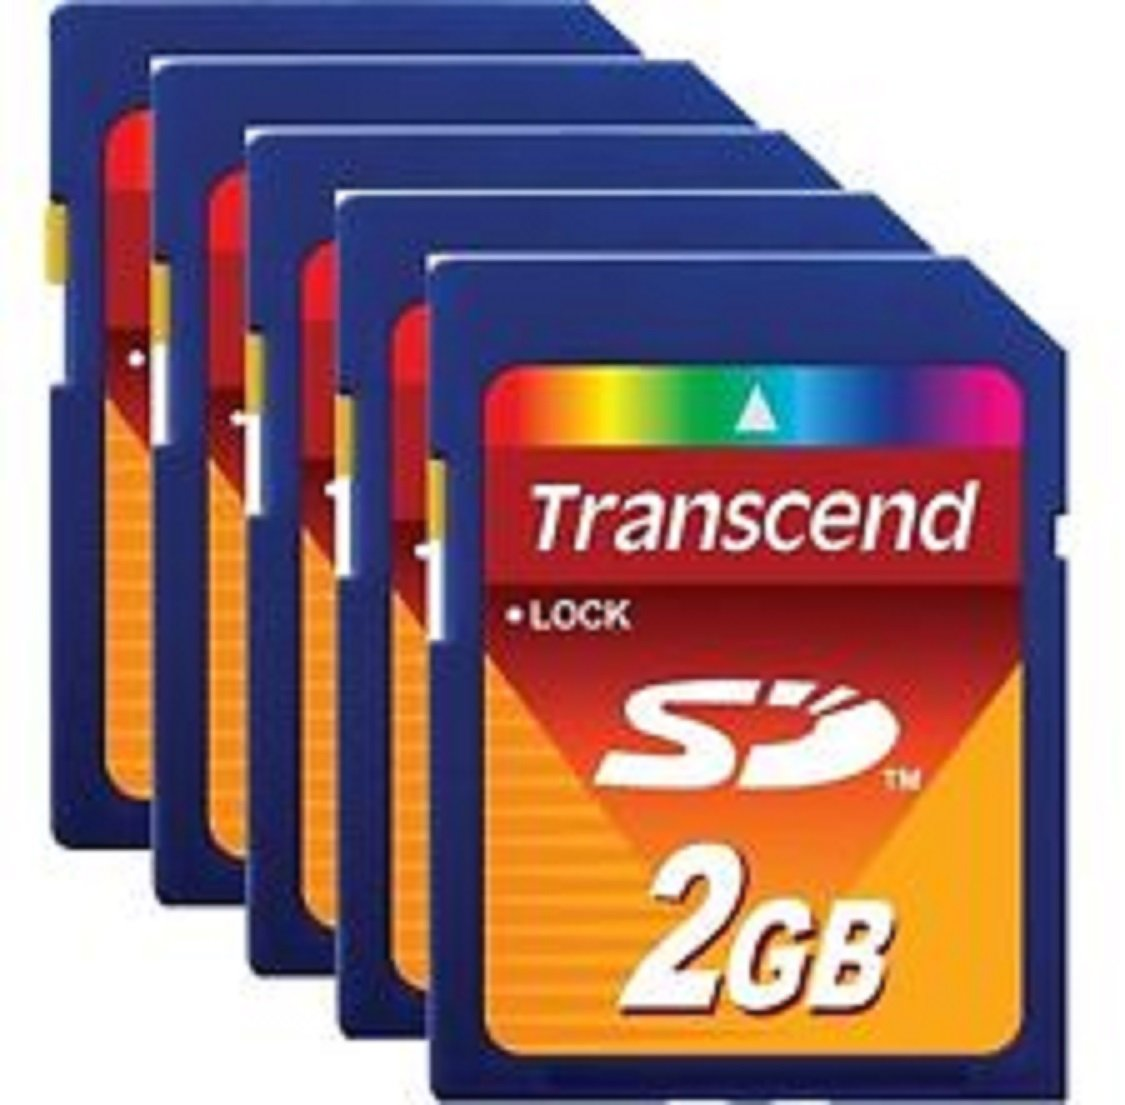 TRANSCEND TS2GSDC CARD, SD, 2GB (100 pieces)